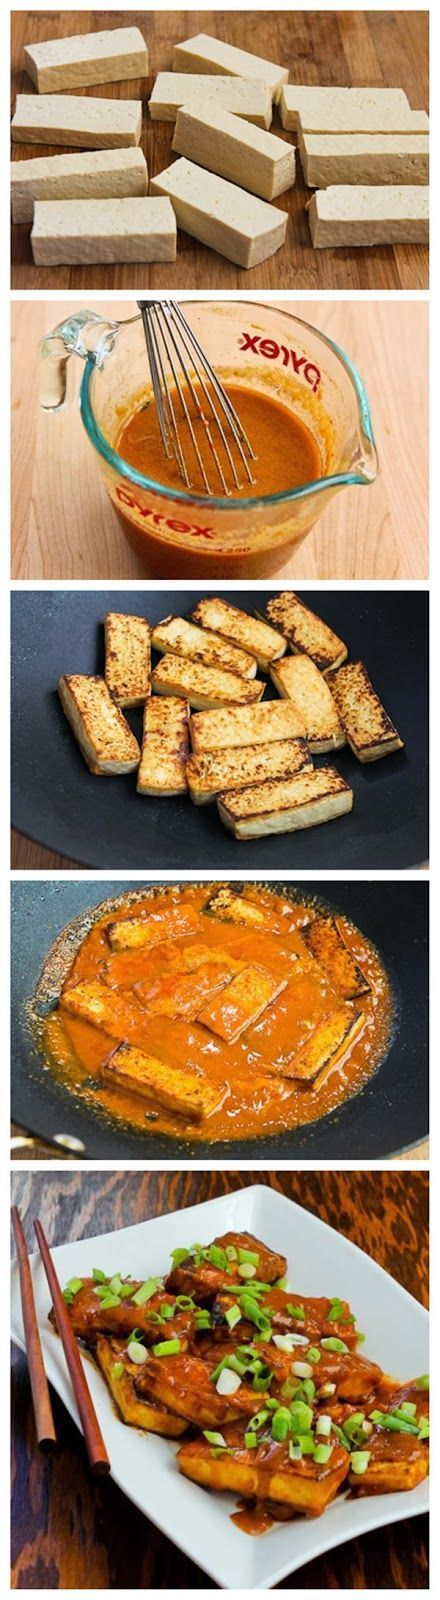 Recipe for Spicy Vegan Peanut Butter Tofu with Sriracha - just have to drop the sriracha for you ;)